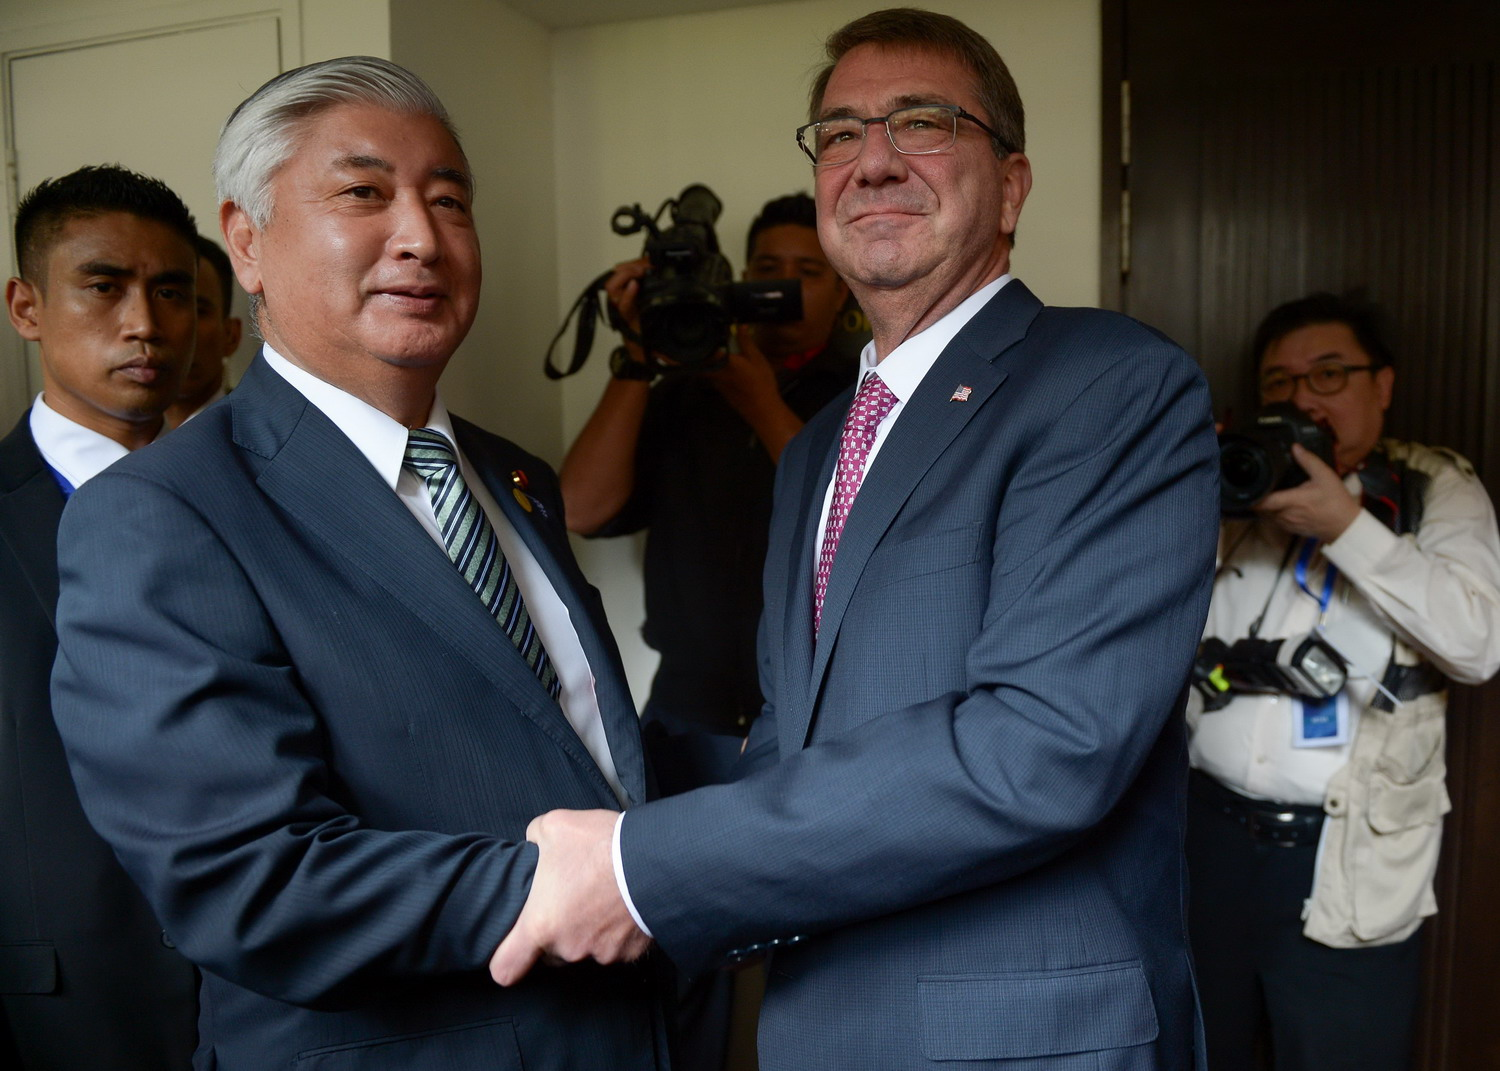 U.S., Japan push for inclusion of South China Sea in defense forum statement